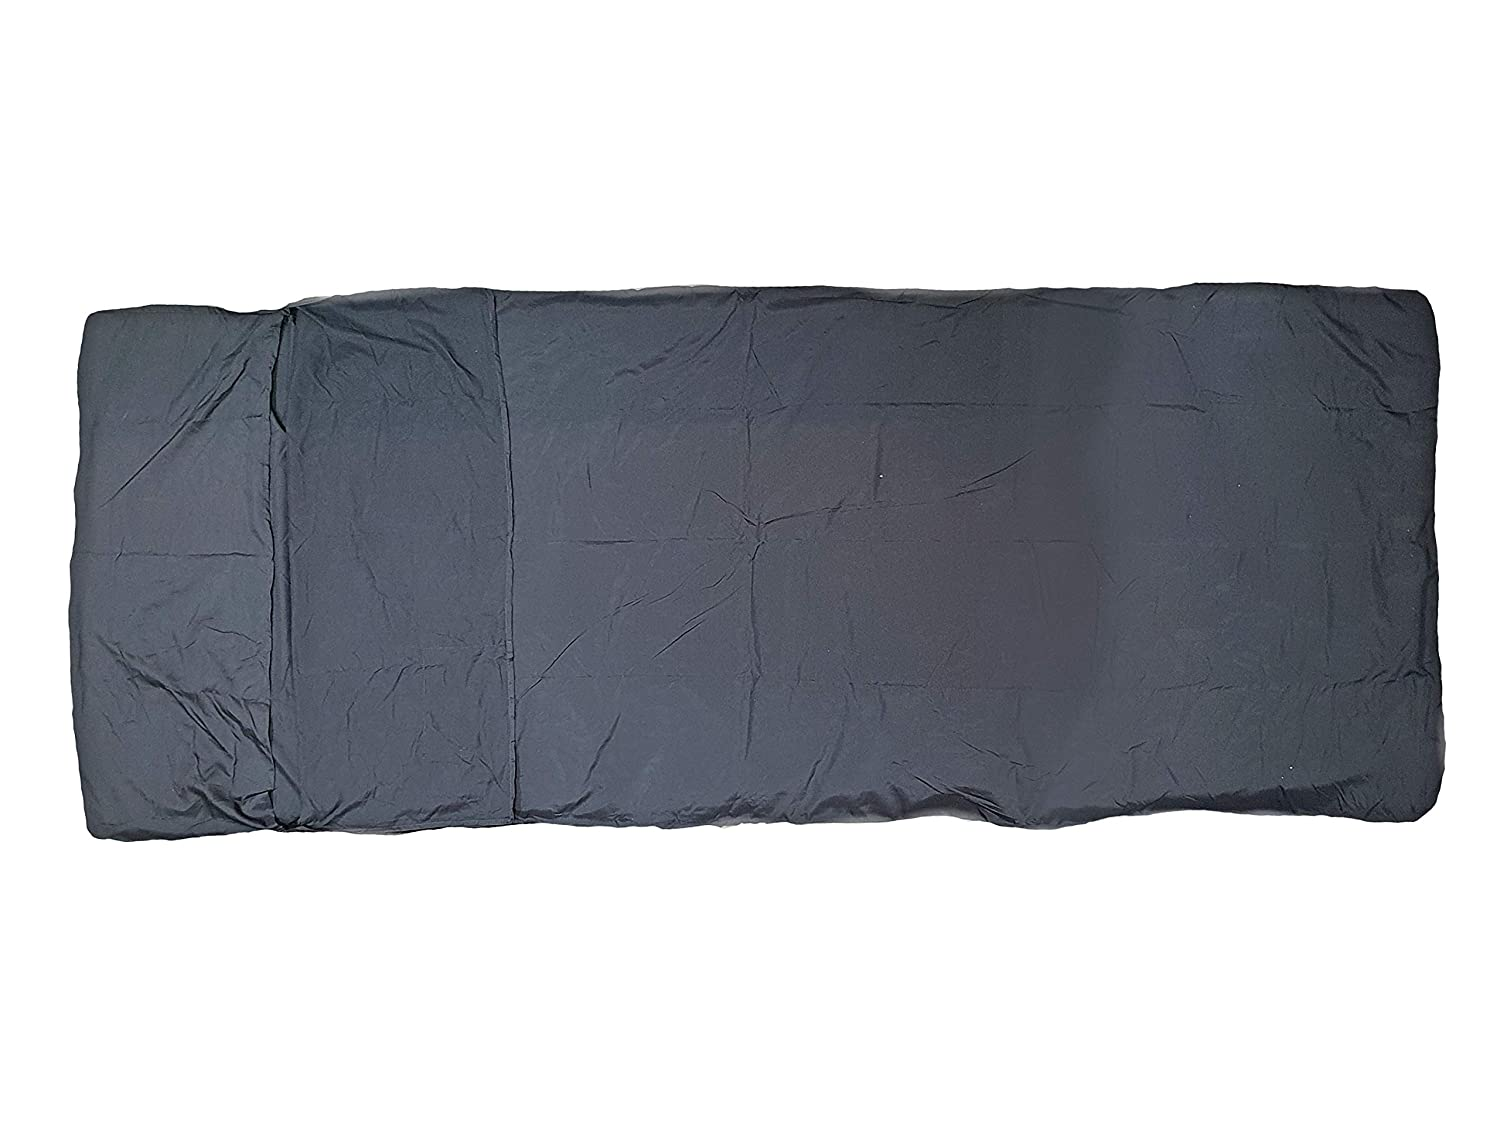 EarthTrek Extra Large Zippered Travel Sleeping Bag Liner